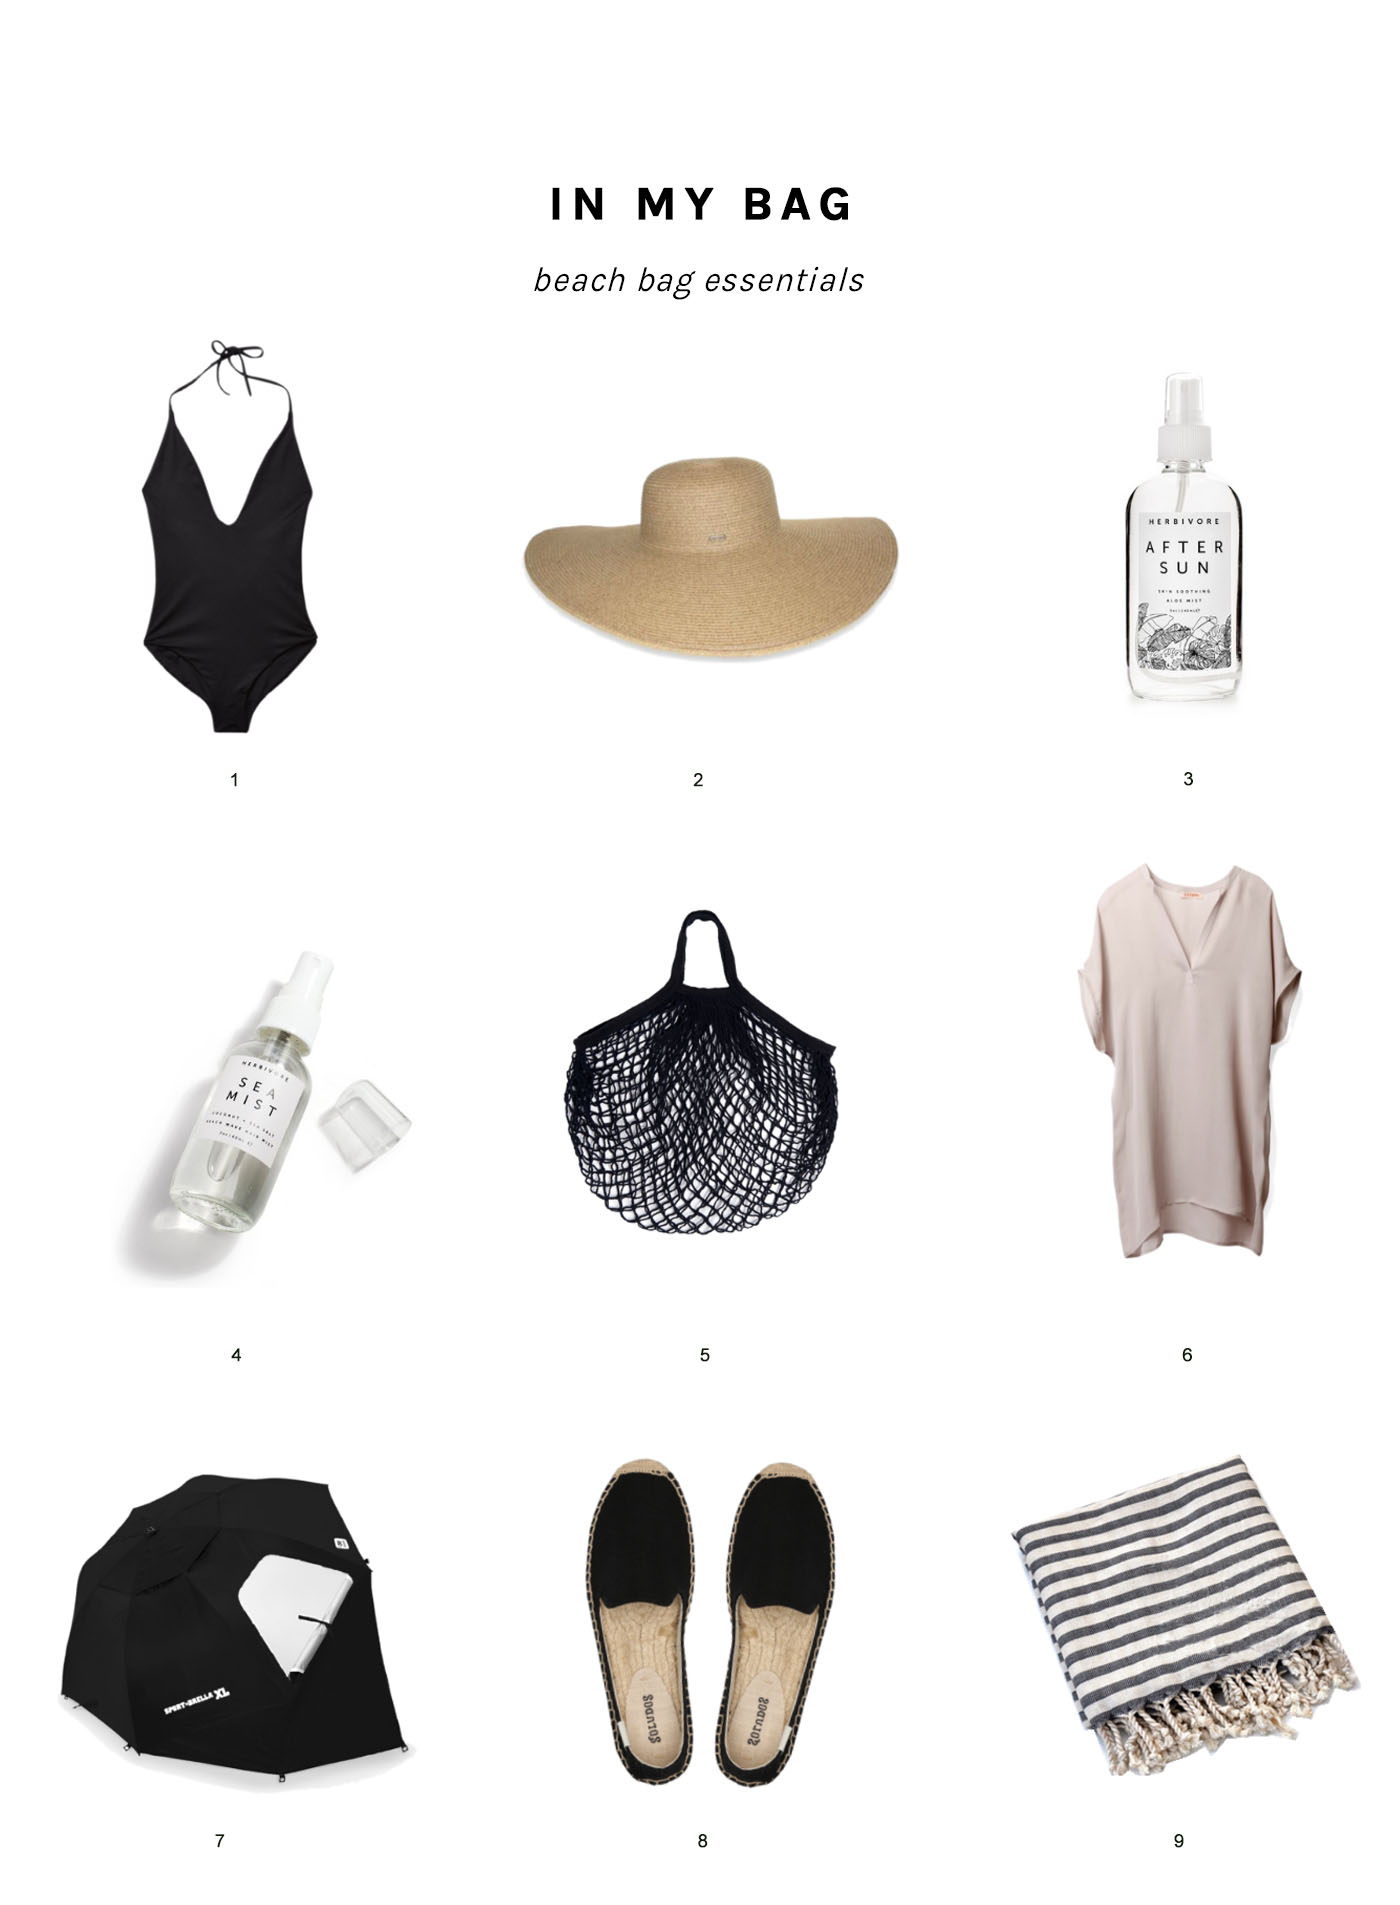 Beach bag essentials, my favorites to pack for a day at the beach.